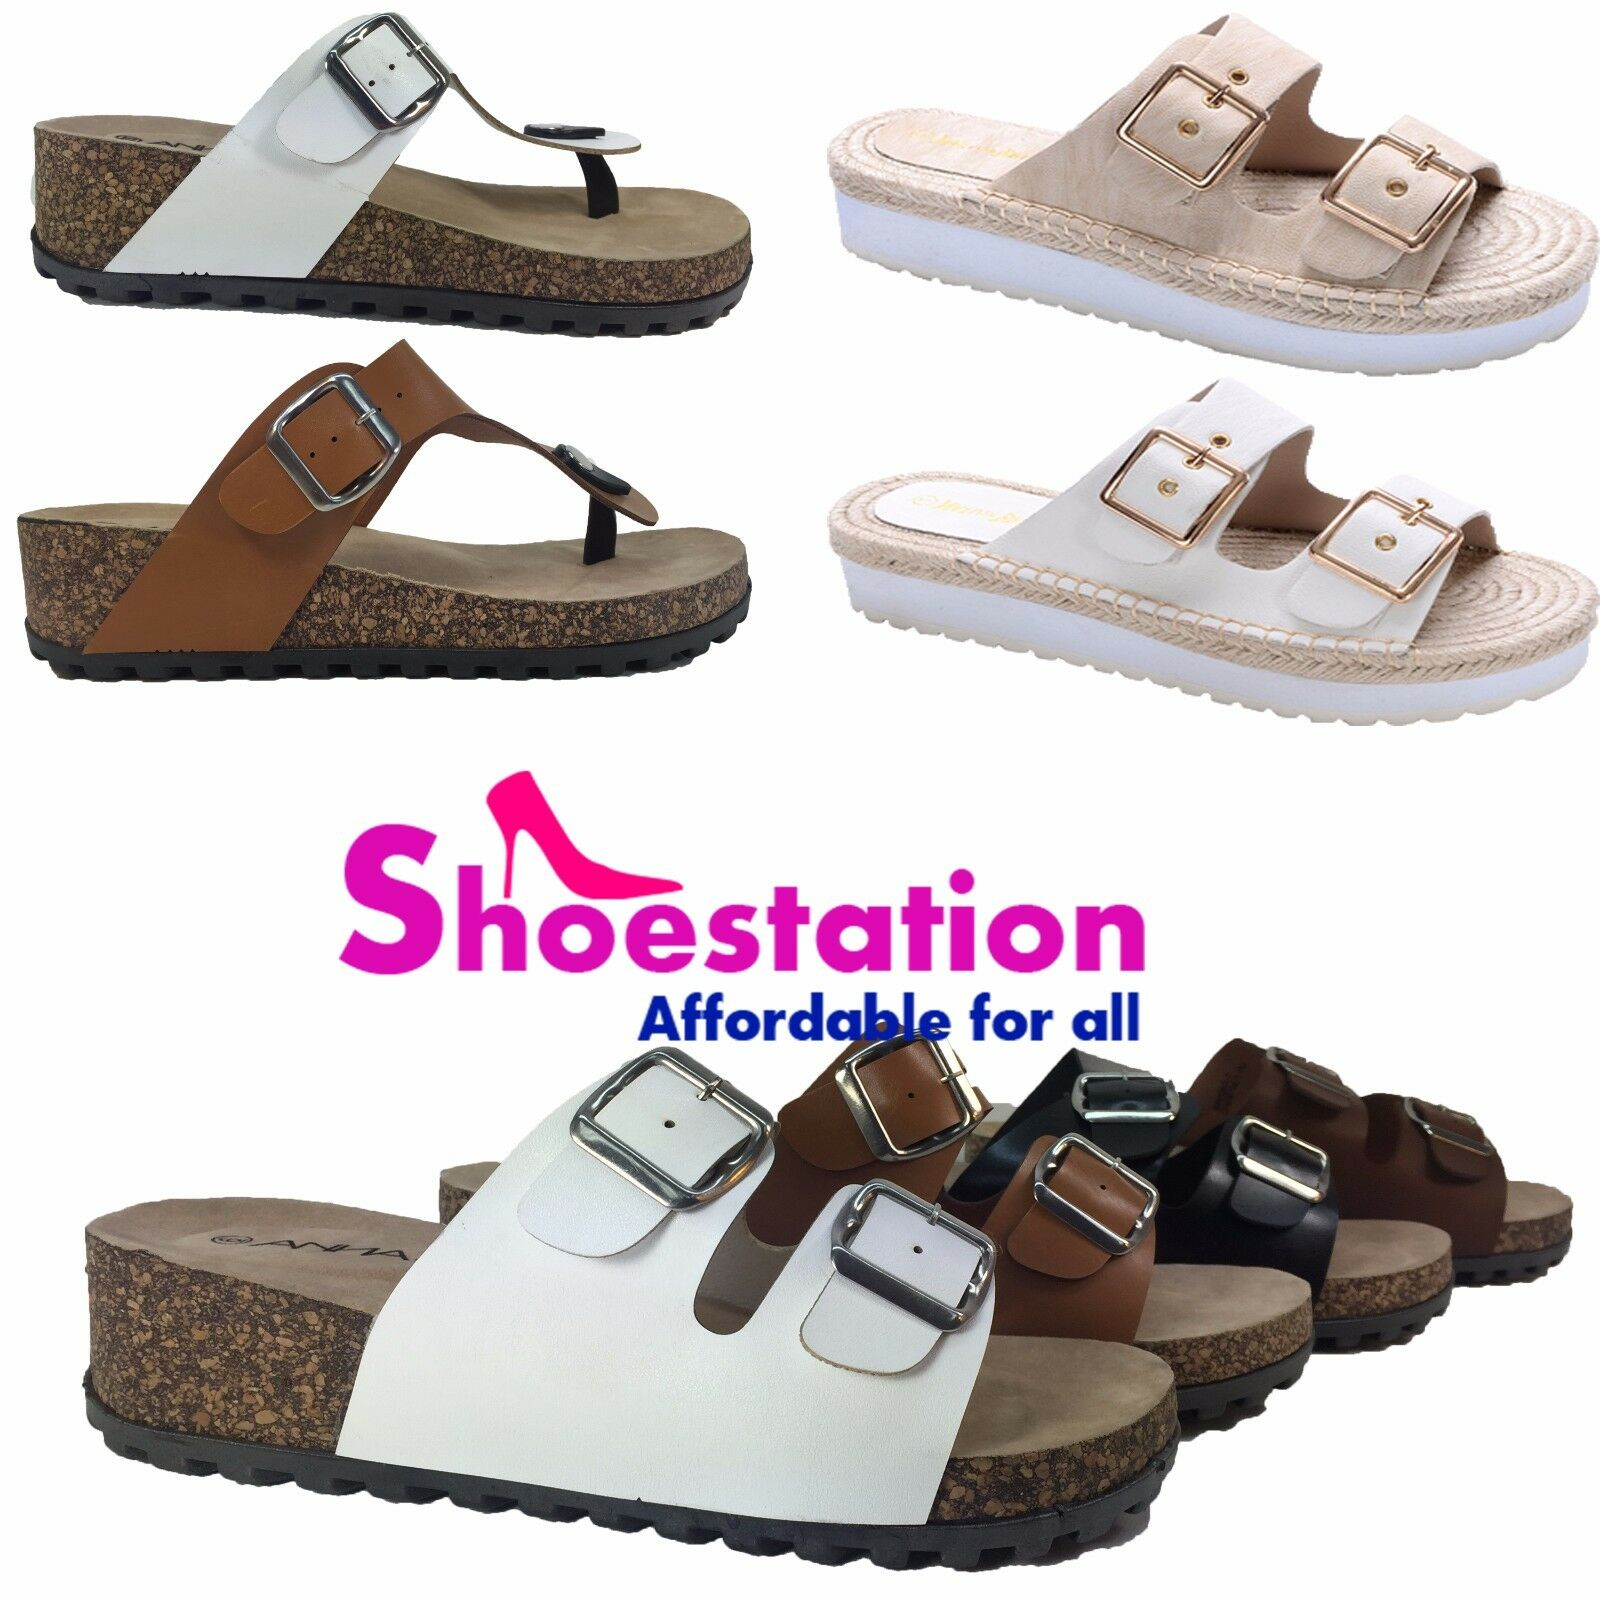 NEW Cork Women's Slide Buckle T-Strap Cork NEW Footbed Platform Flip Flop Shoes Sandals 462286